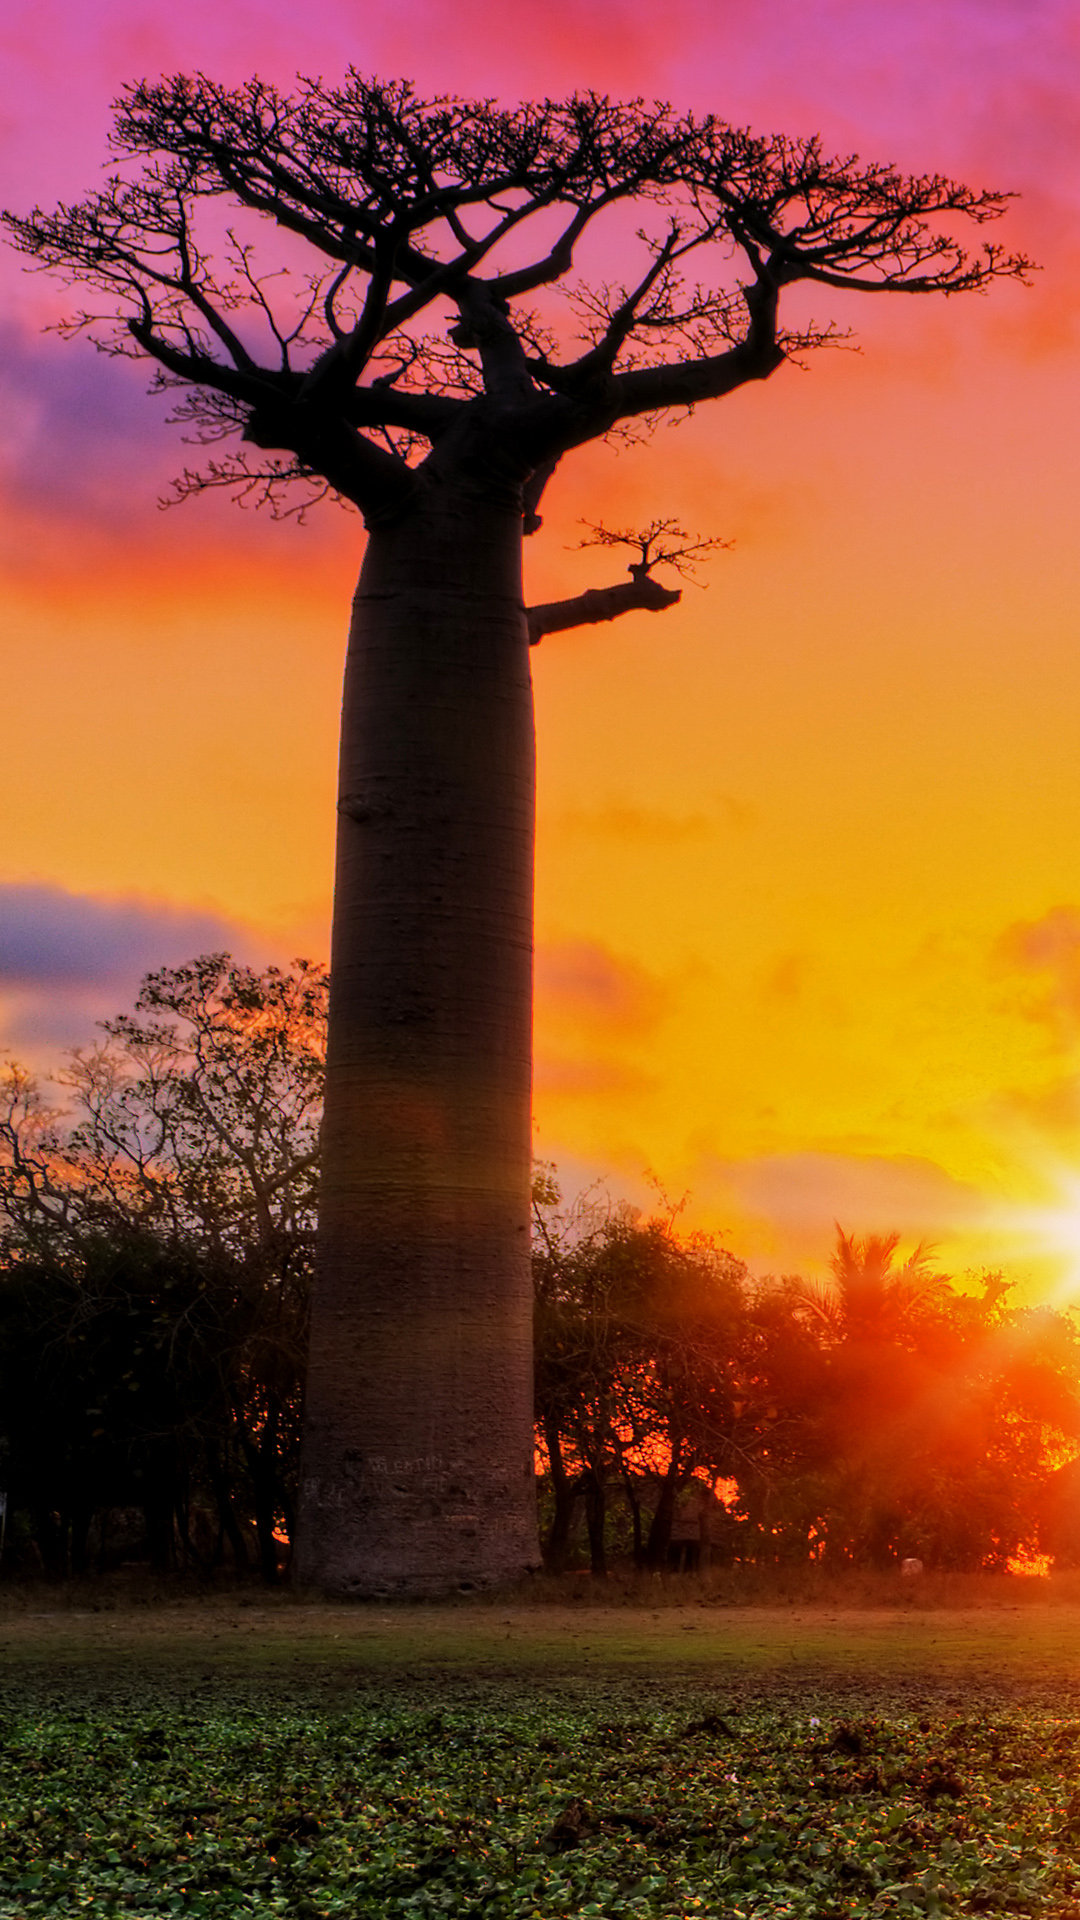 baobab trees at sunset at the avenue of the baobabs in